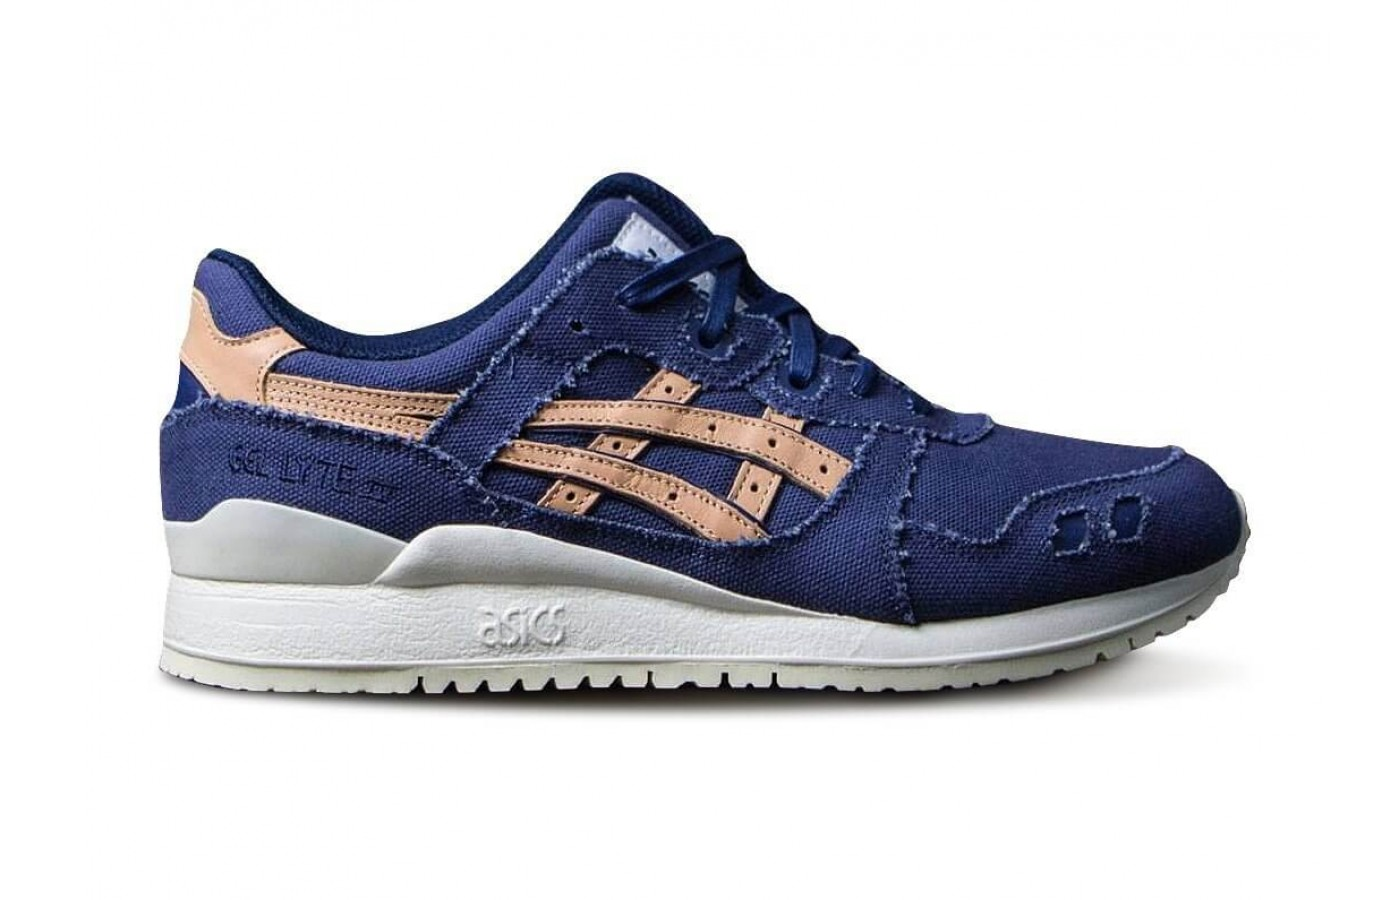 The Asics Gel Lyte III features a mesh and leather upper